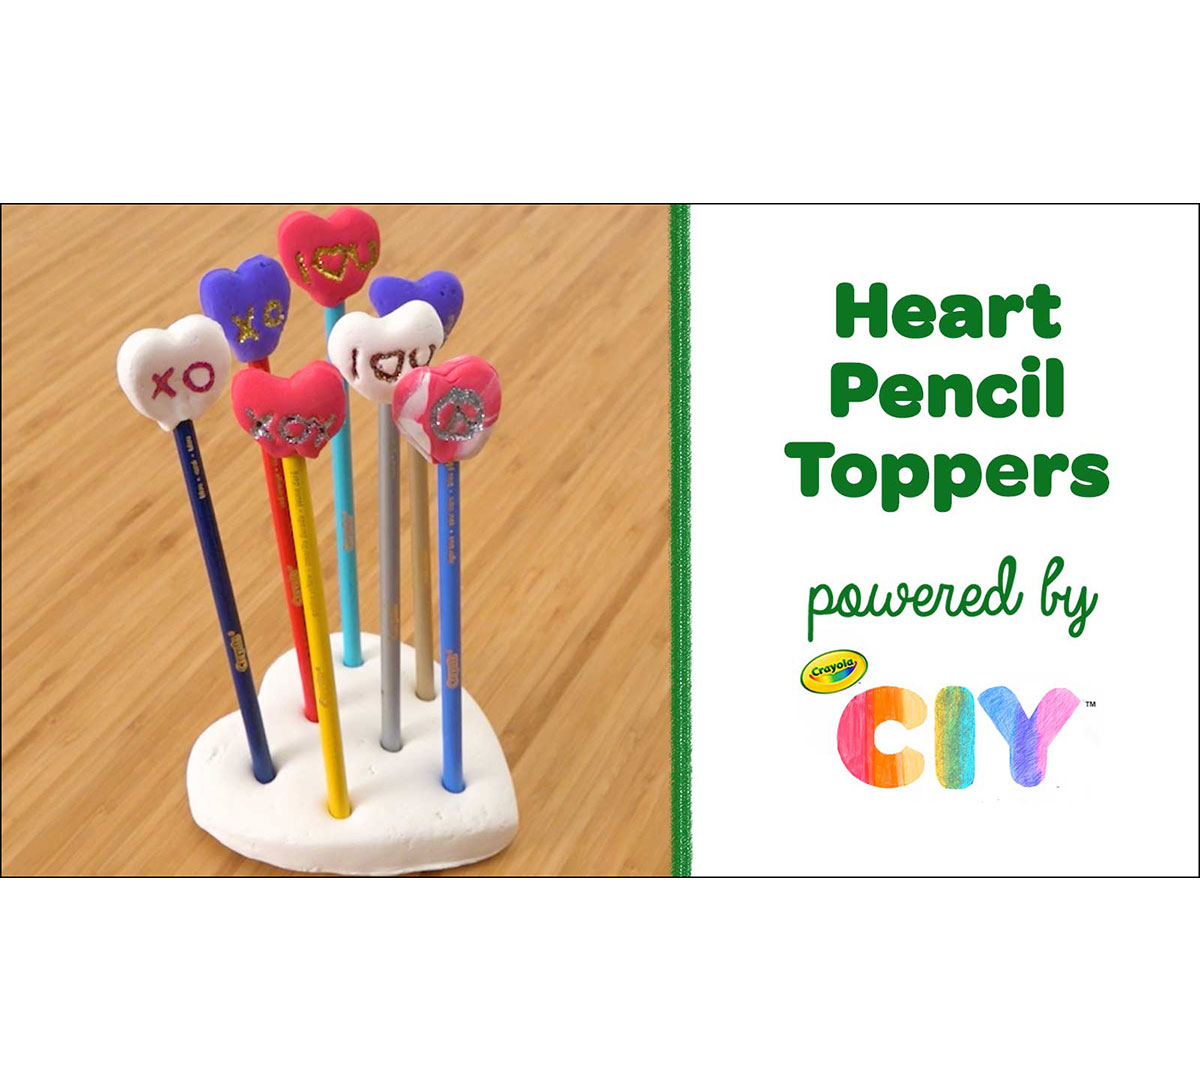 Valentine's Day Craft Kit for Heart Pencil Toppers supplies